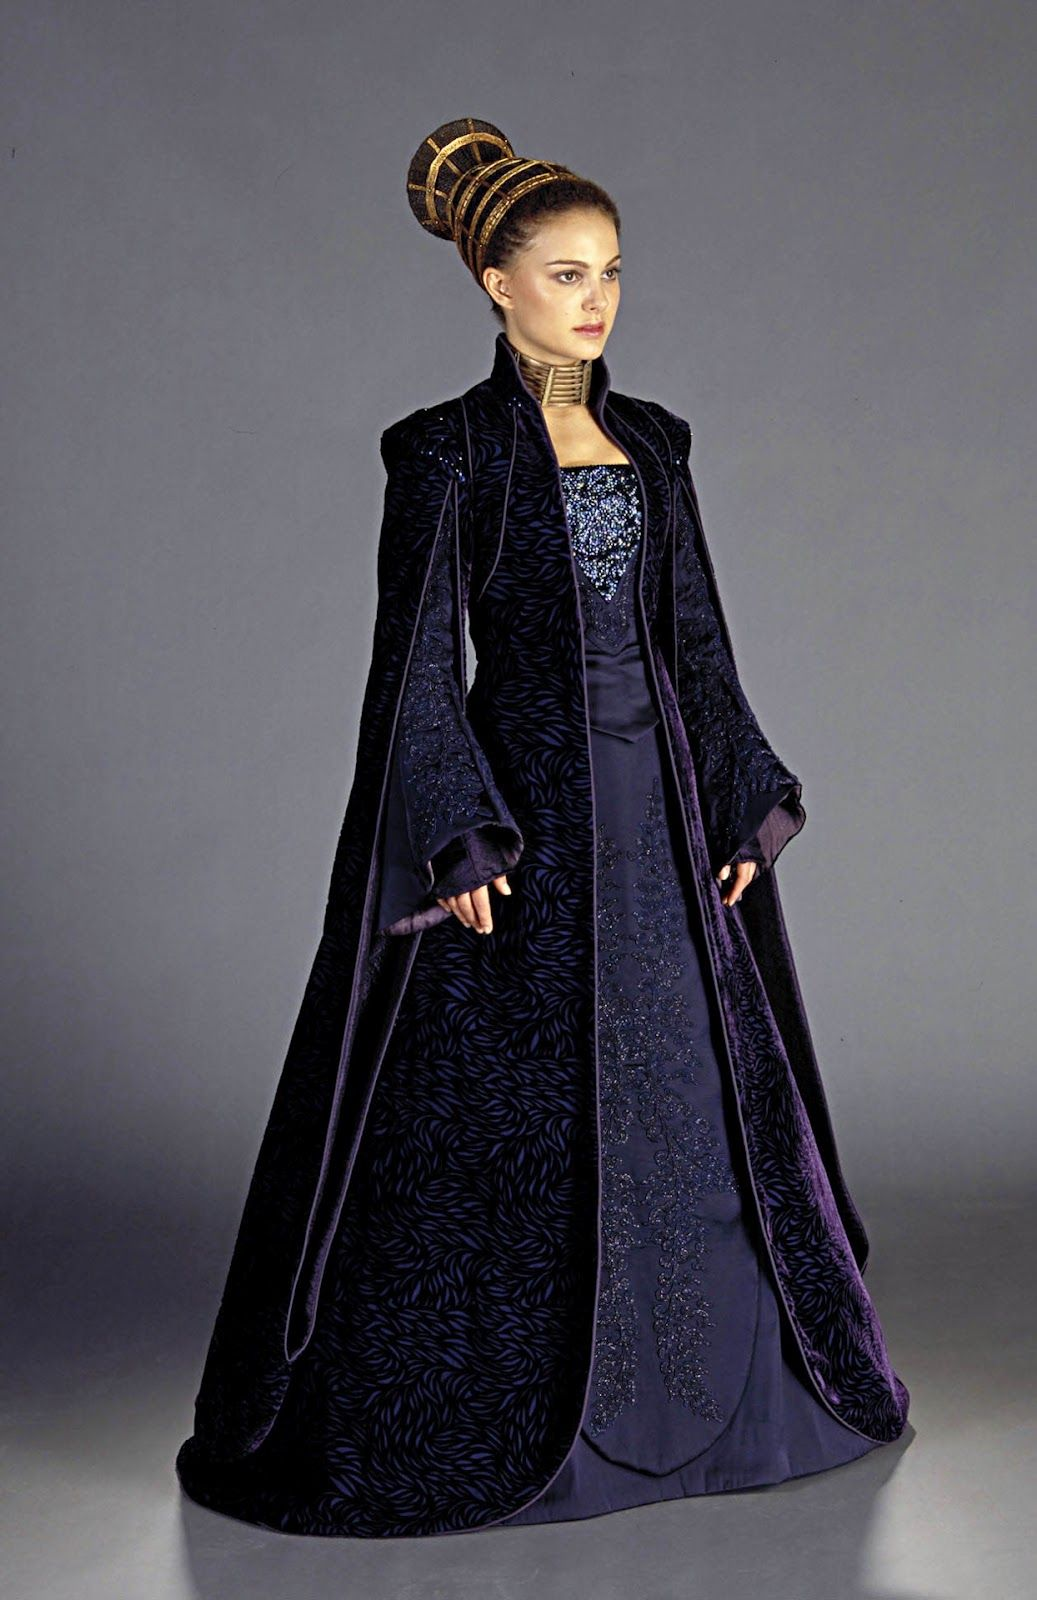 Senator dress for Padme Amidala, worn by Natalie Portman in Star Wars: Episode II.